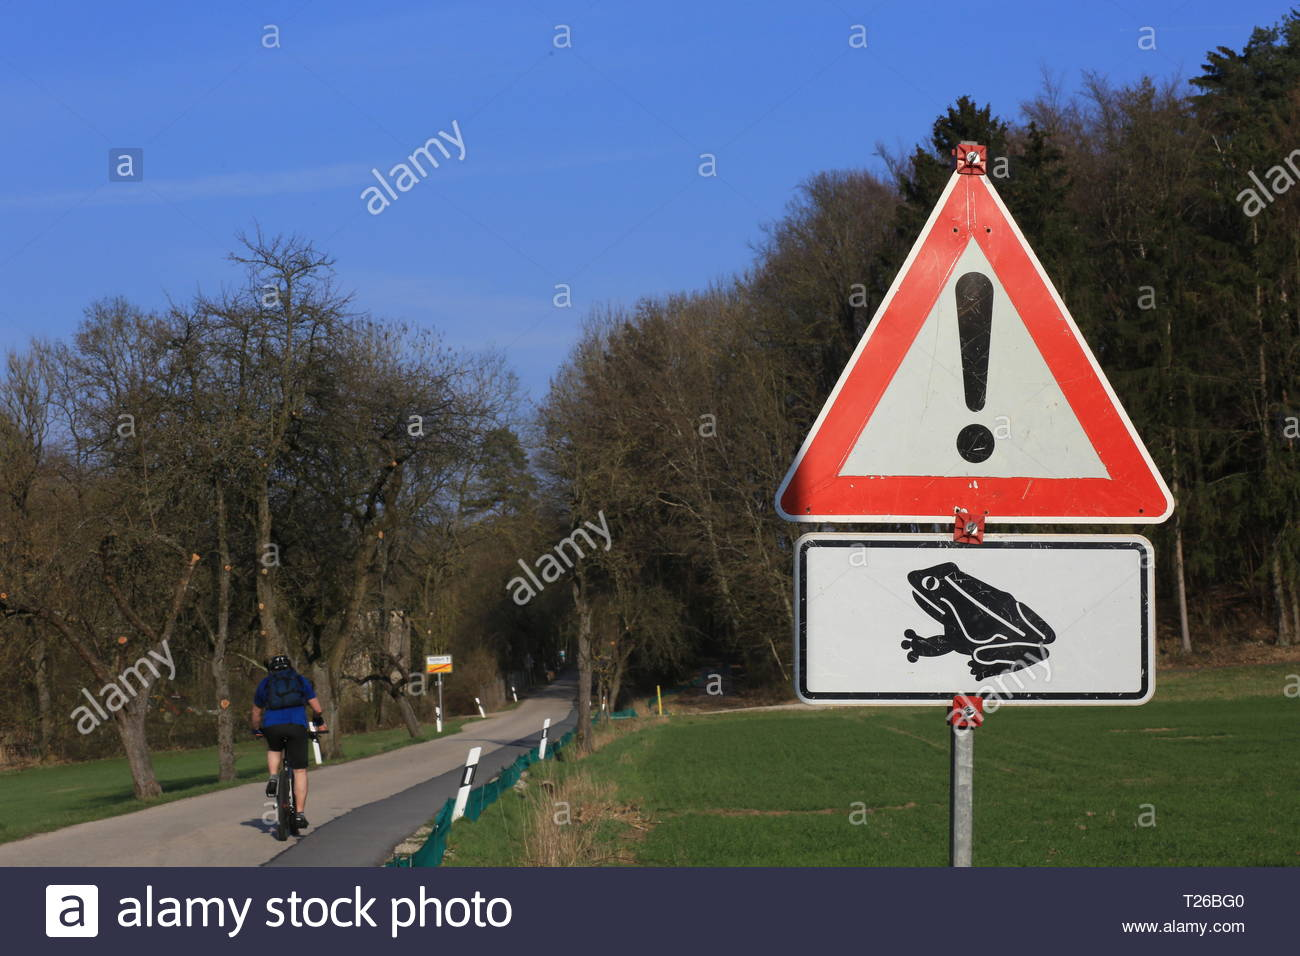 A triangular red sign warns drivers of the hazard of frogs crossing the road in spring - Stock Image